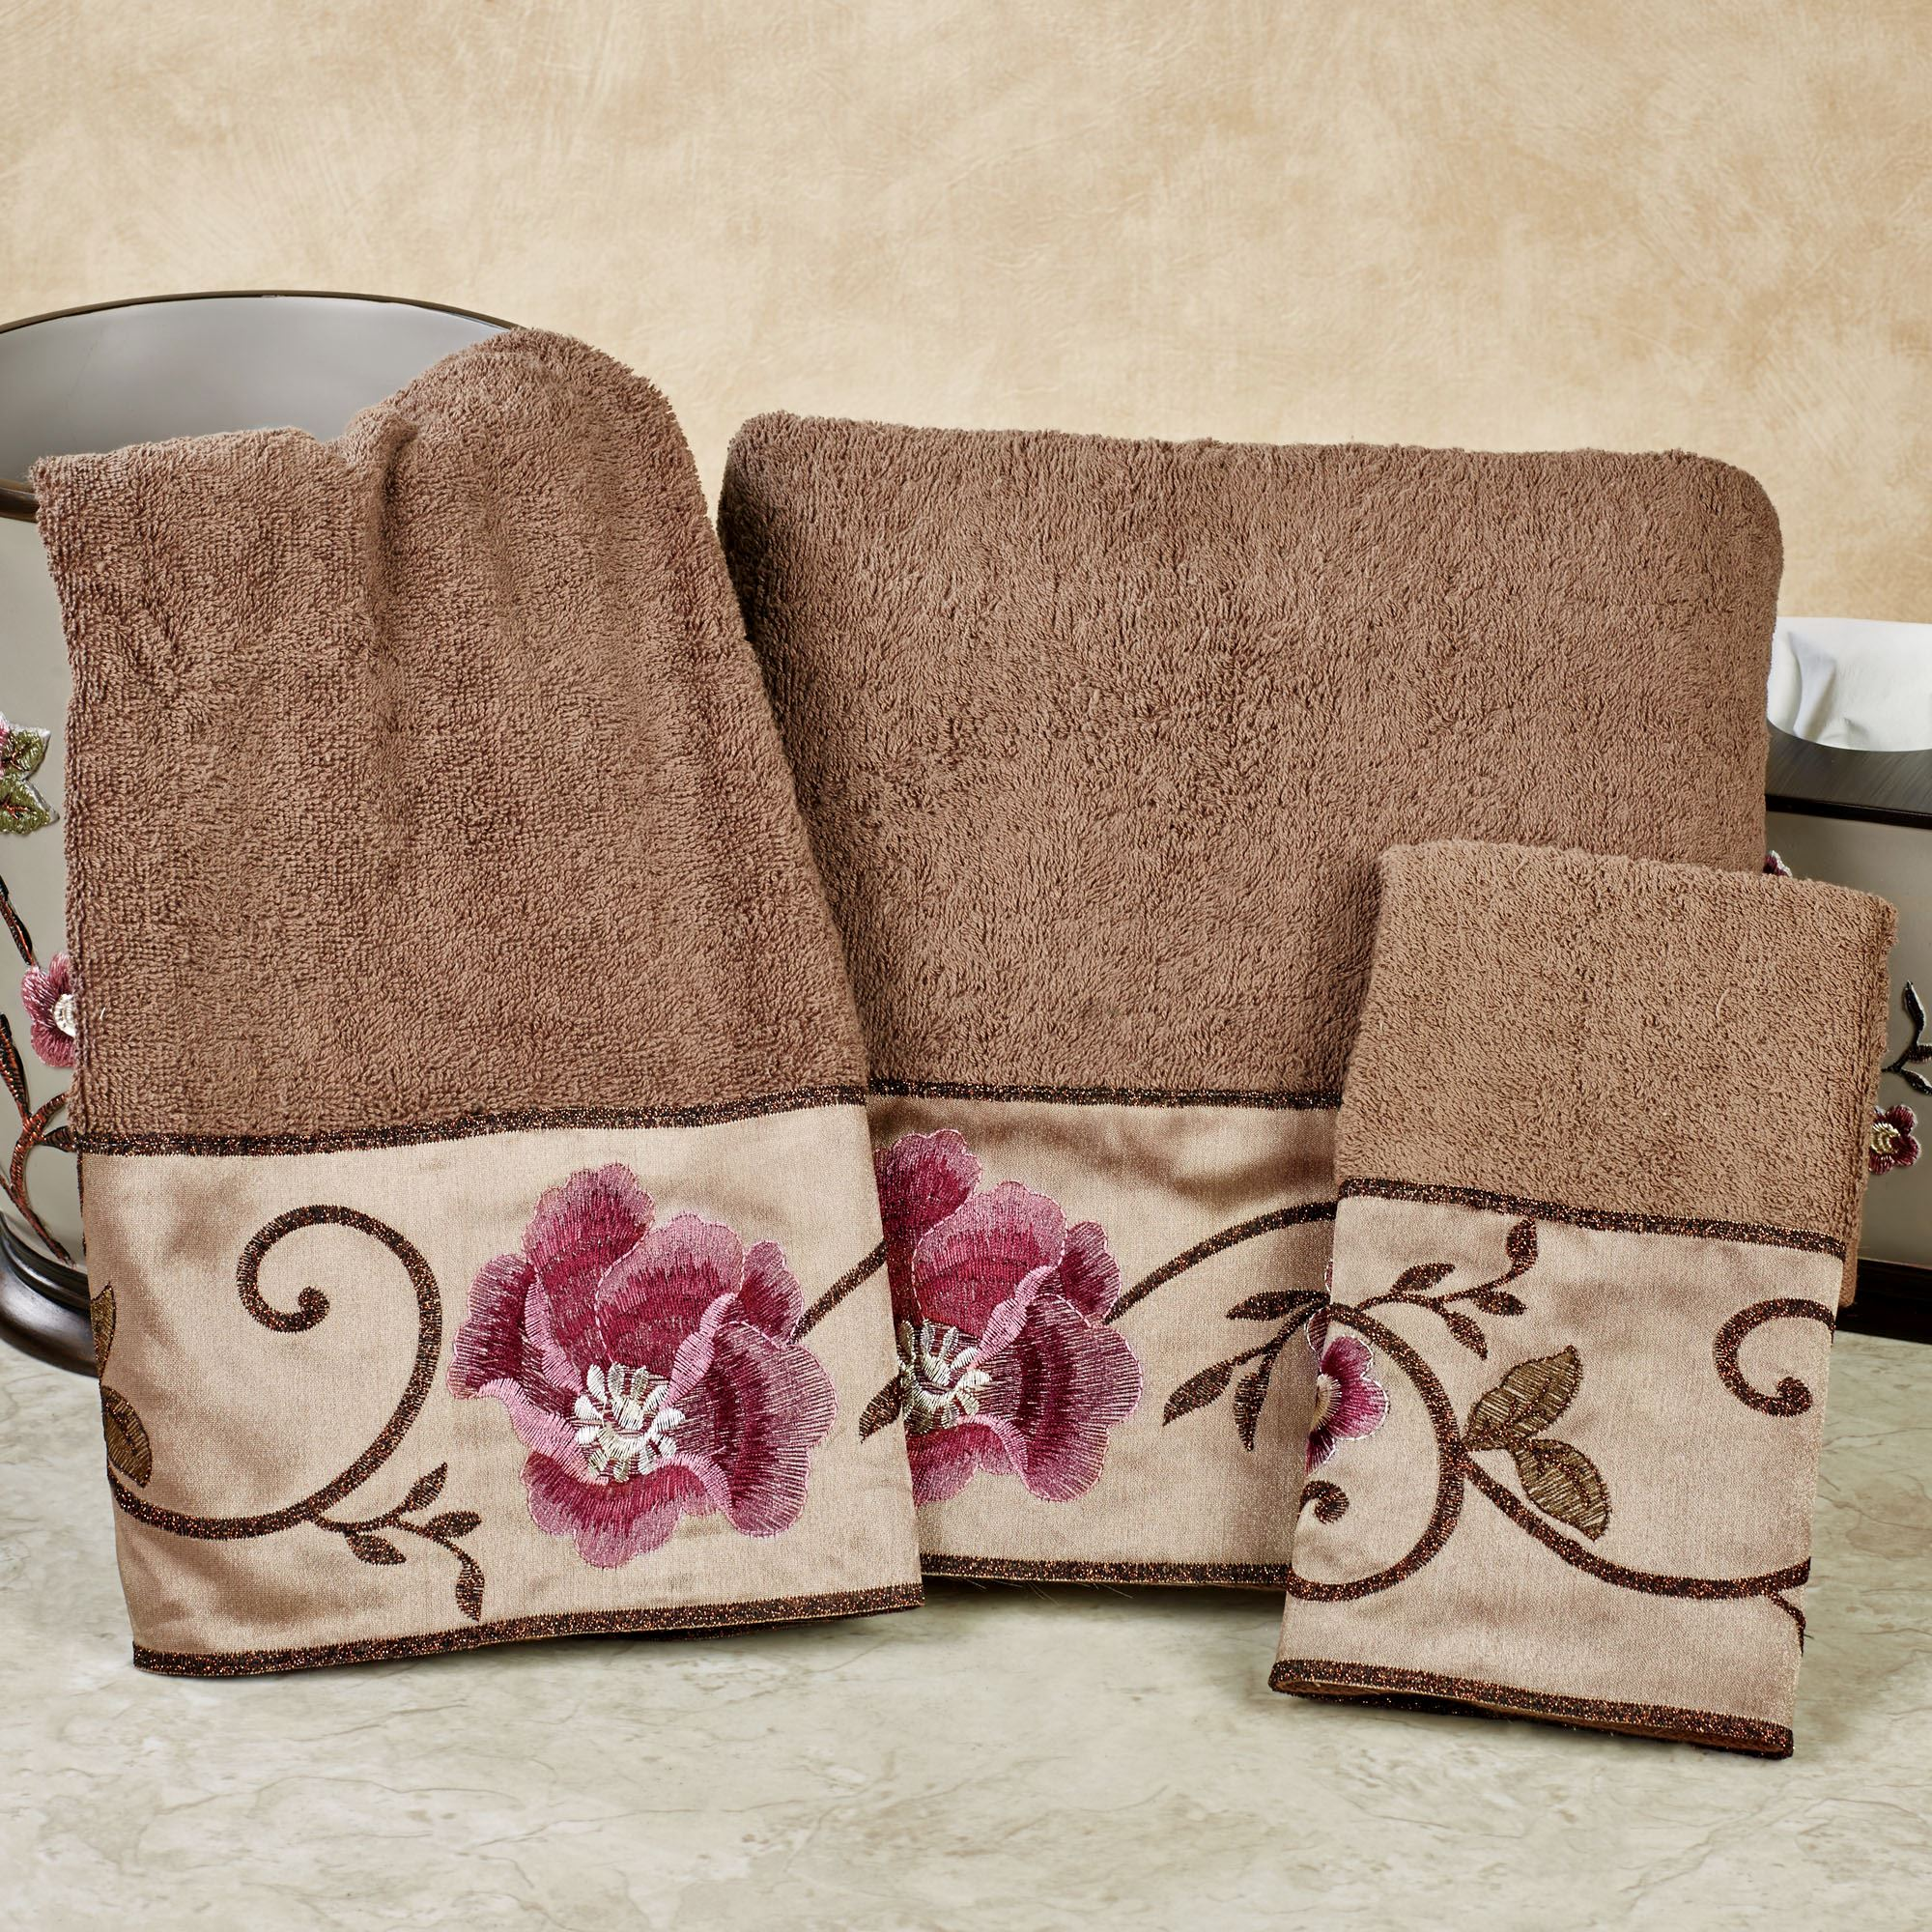 Larissa Bath Towel Set Cocoa Hand Fingertip Touch To Zoom